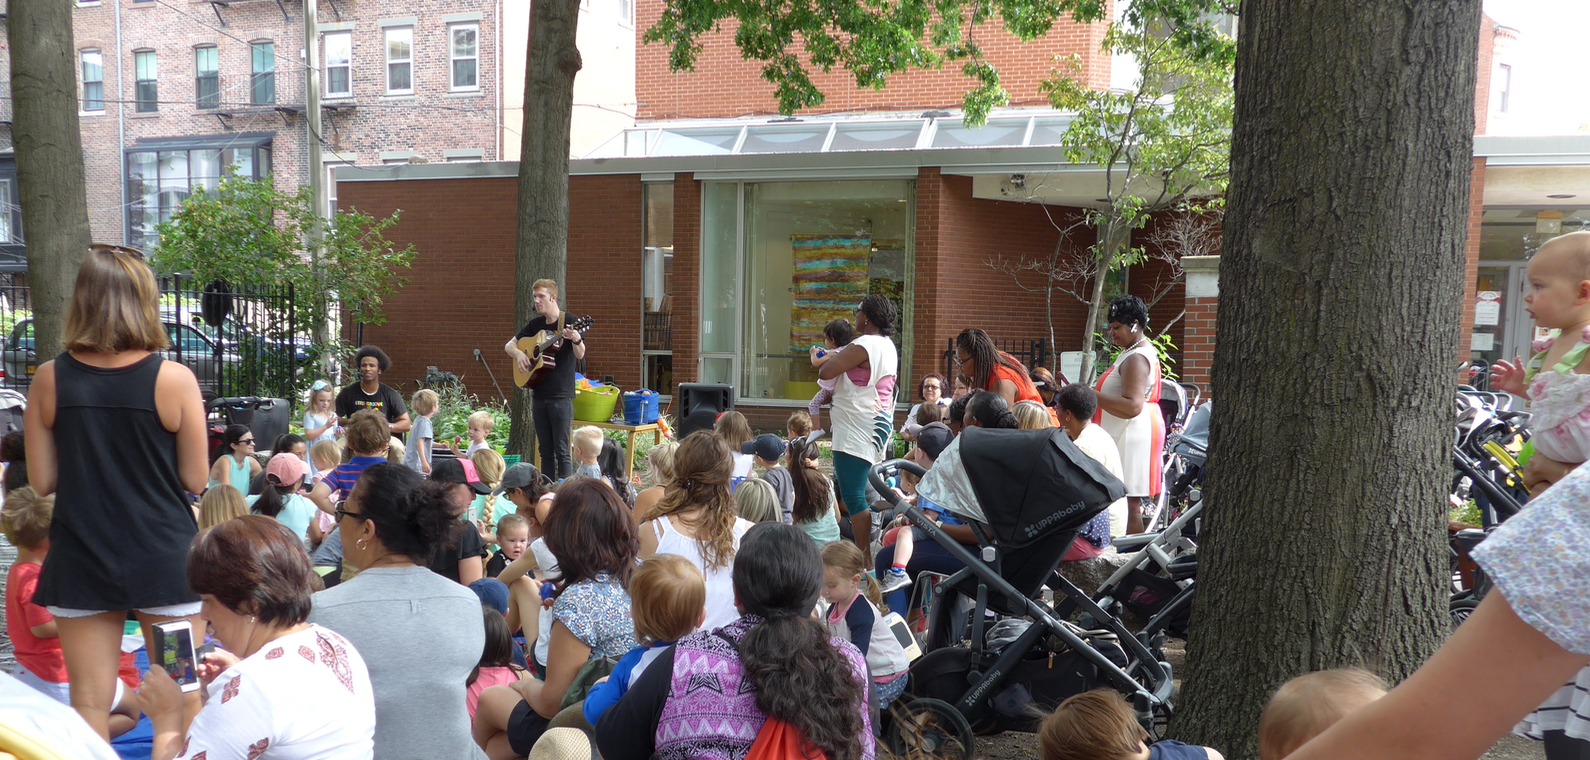 Library Park is a popular 'outside living room' for children's events, sponsored by the Friends of the South End Library and the South End branch